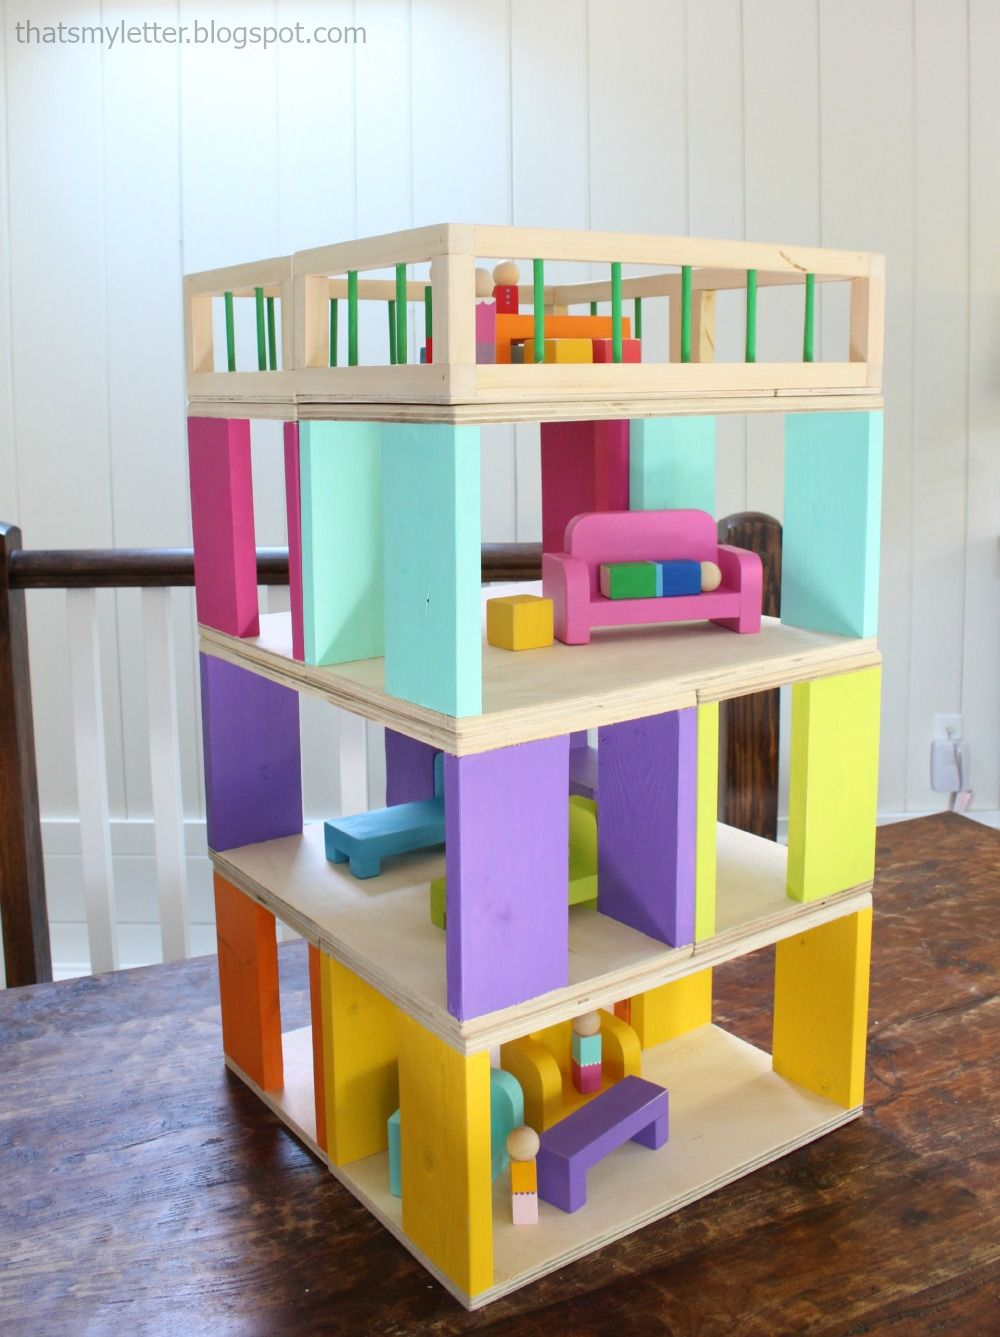 Diy Project Modular Stackable Dollhouse Free And Easy Diy Project And